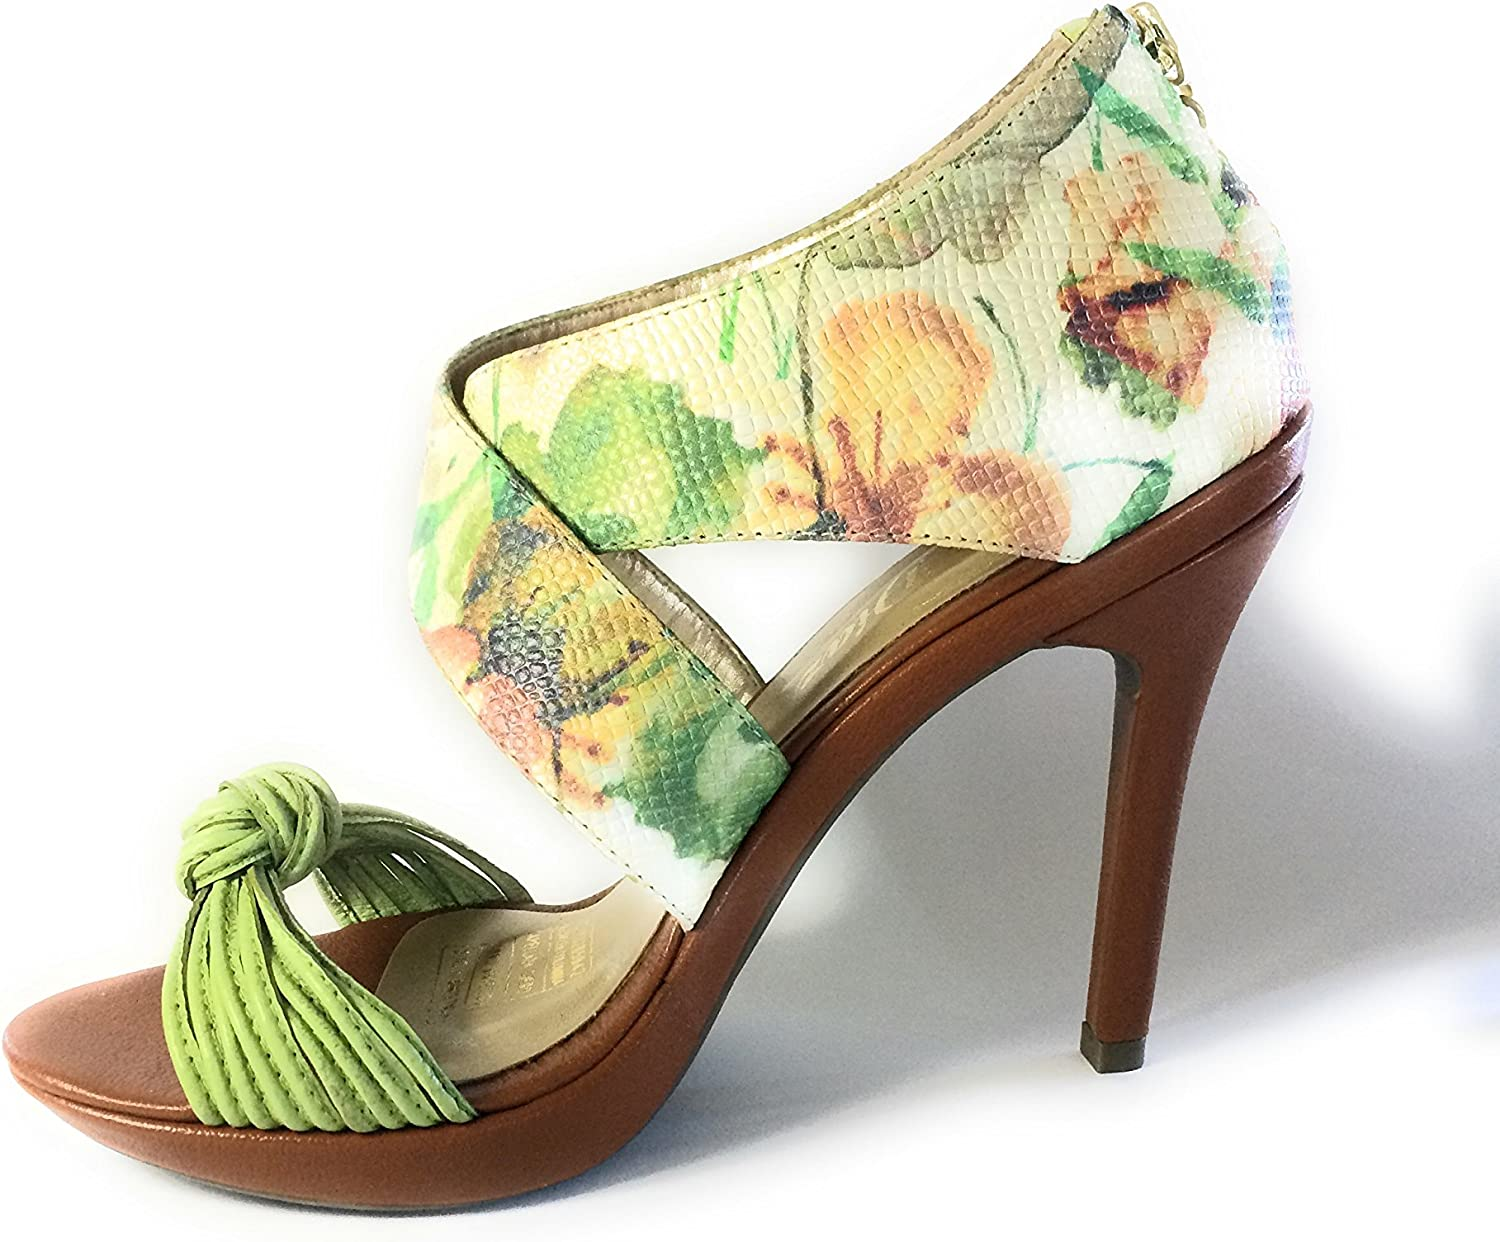 Silvia Diaz Fashion shoes Two-Part High Heels Sandals Honey Mango Green